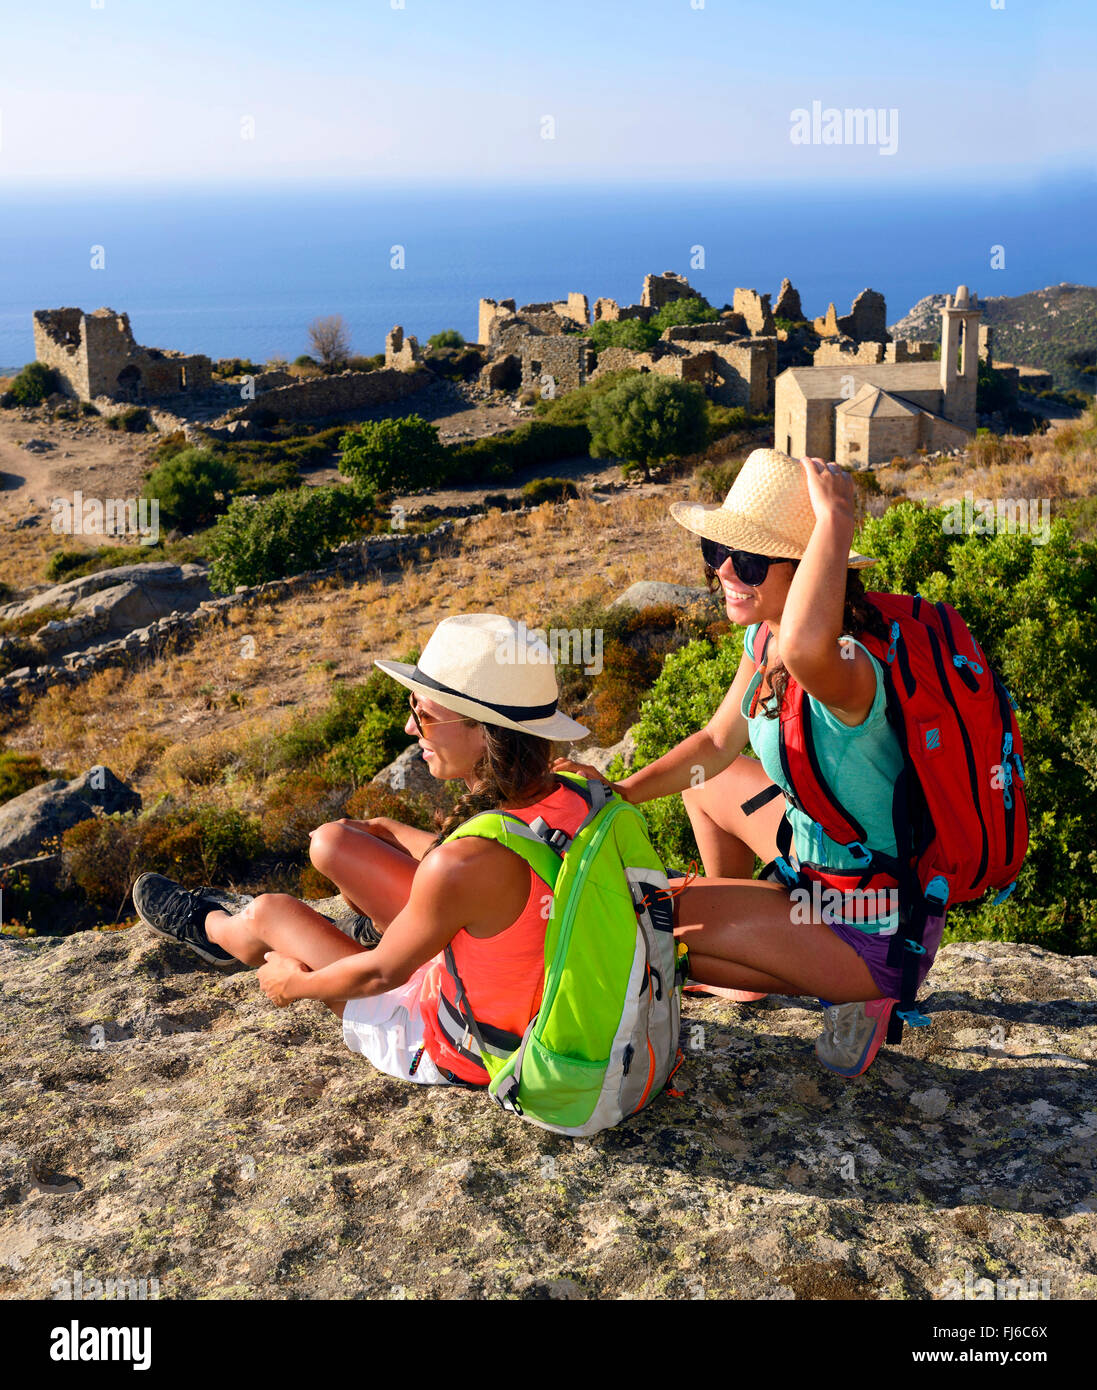 two female hikers taking a break, in the background the abandoned village ruins of Occi, France, Corsica - Stock Image